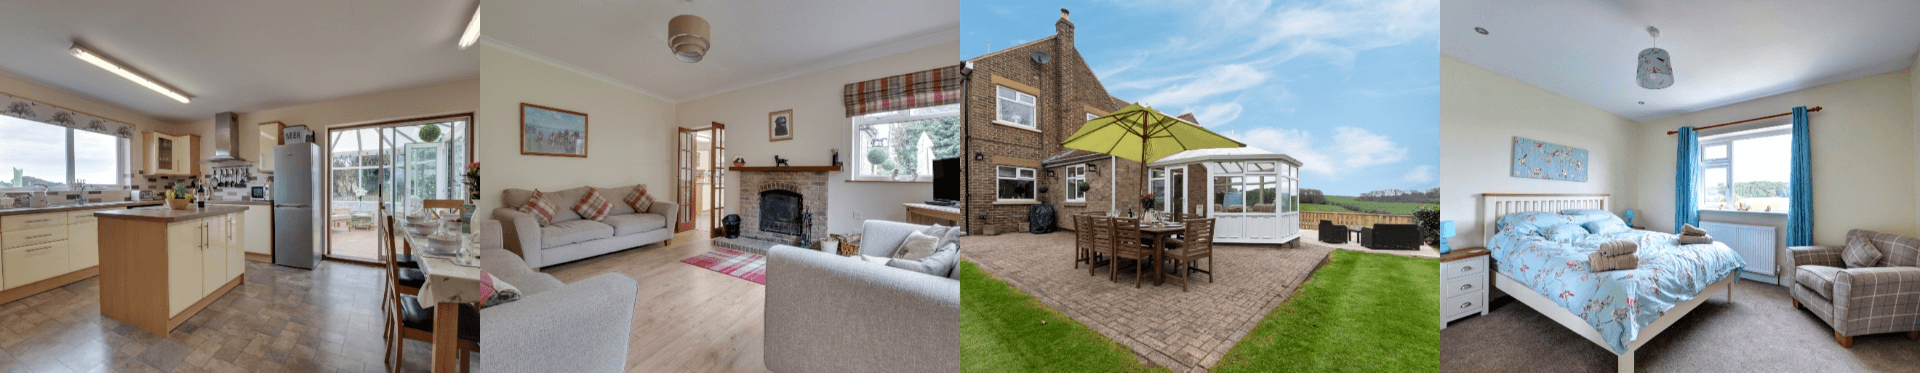 Images of High Croft, a holiday cottage on the Yorkshire Coast